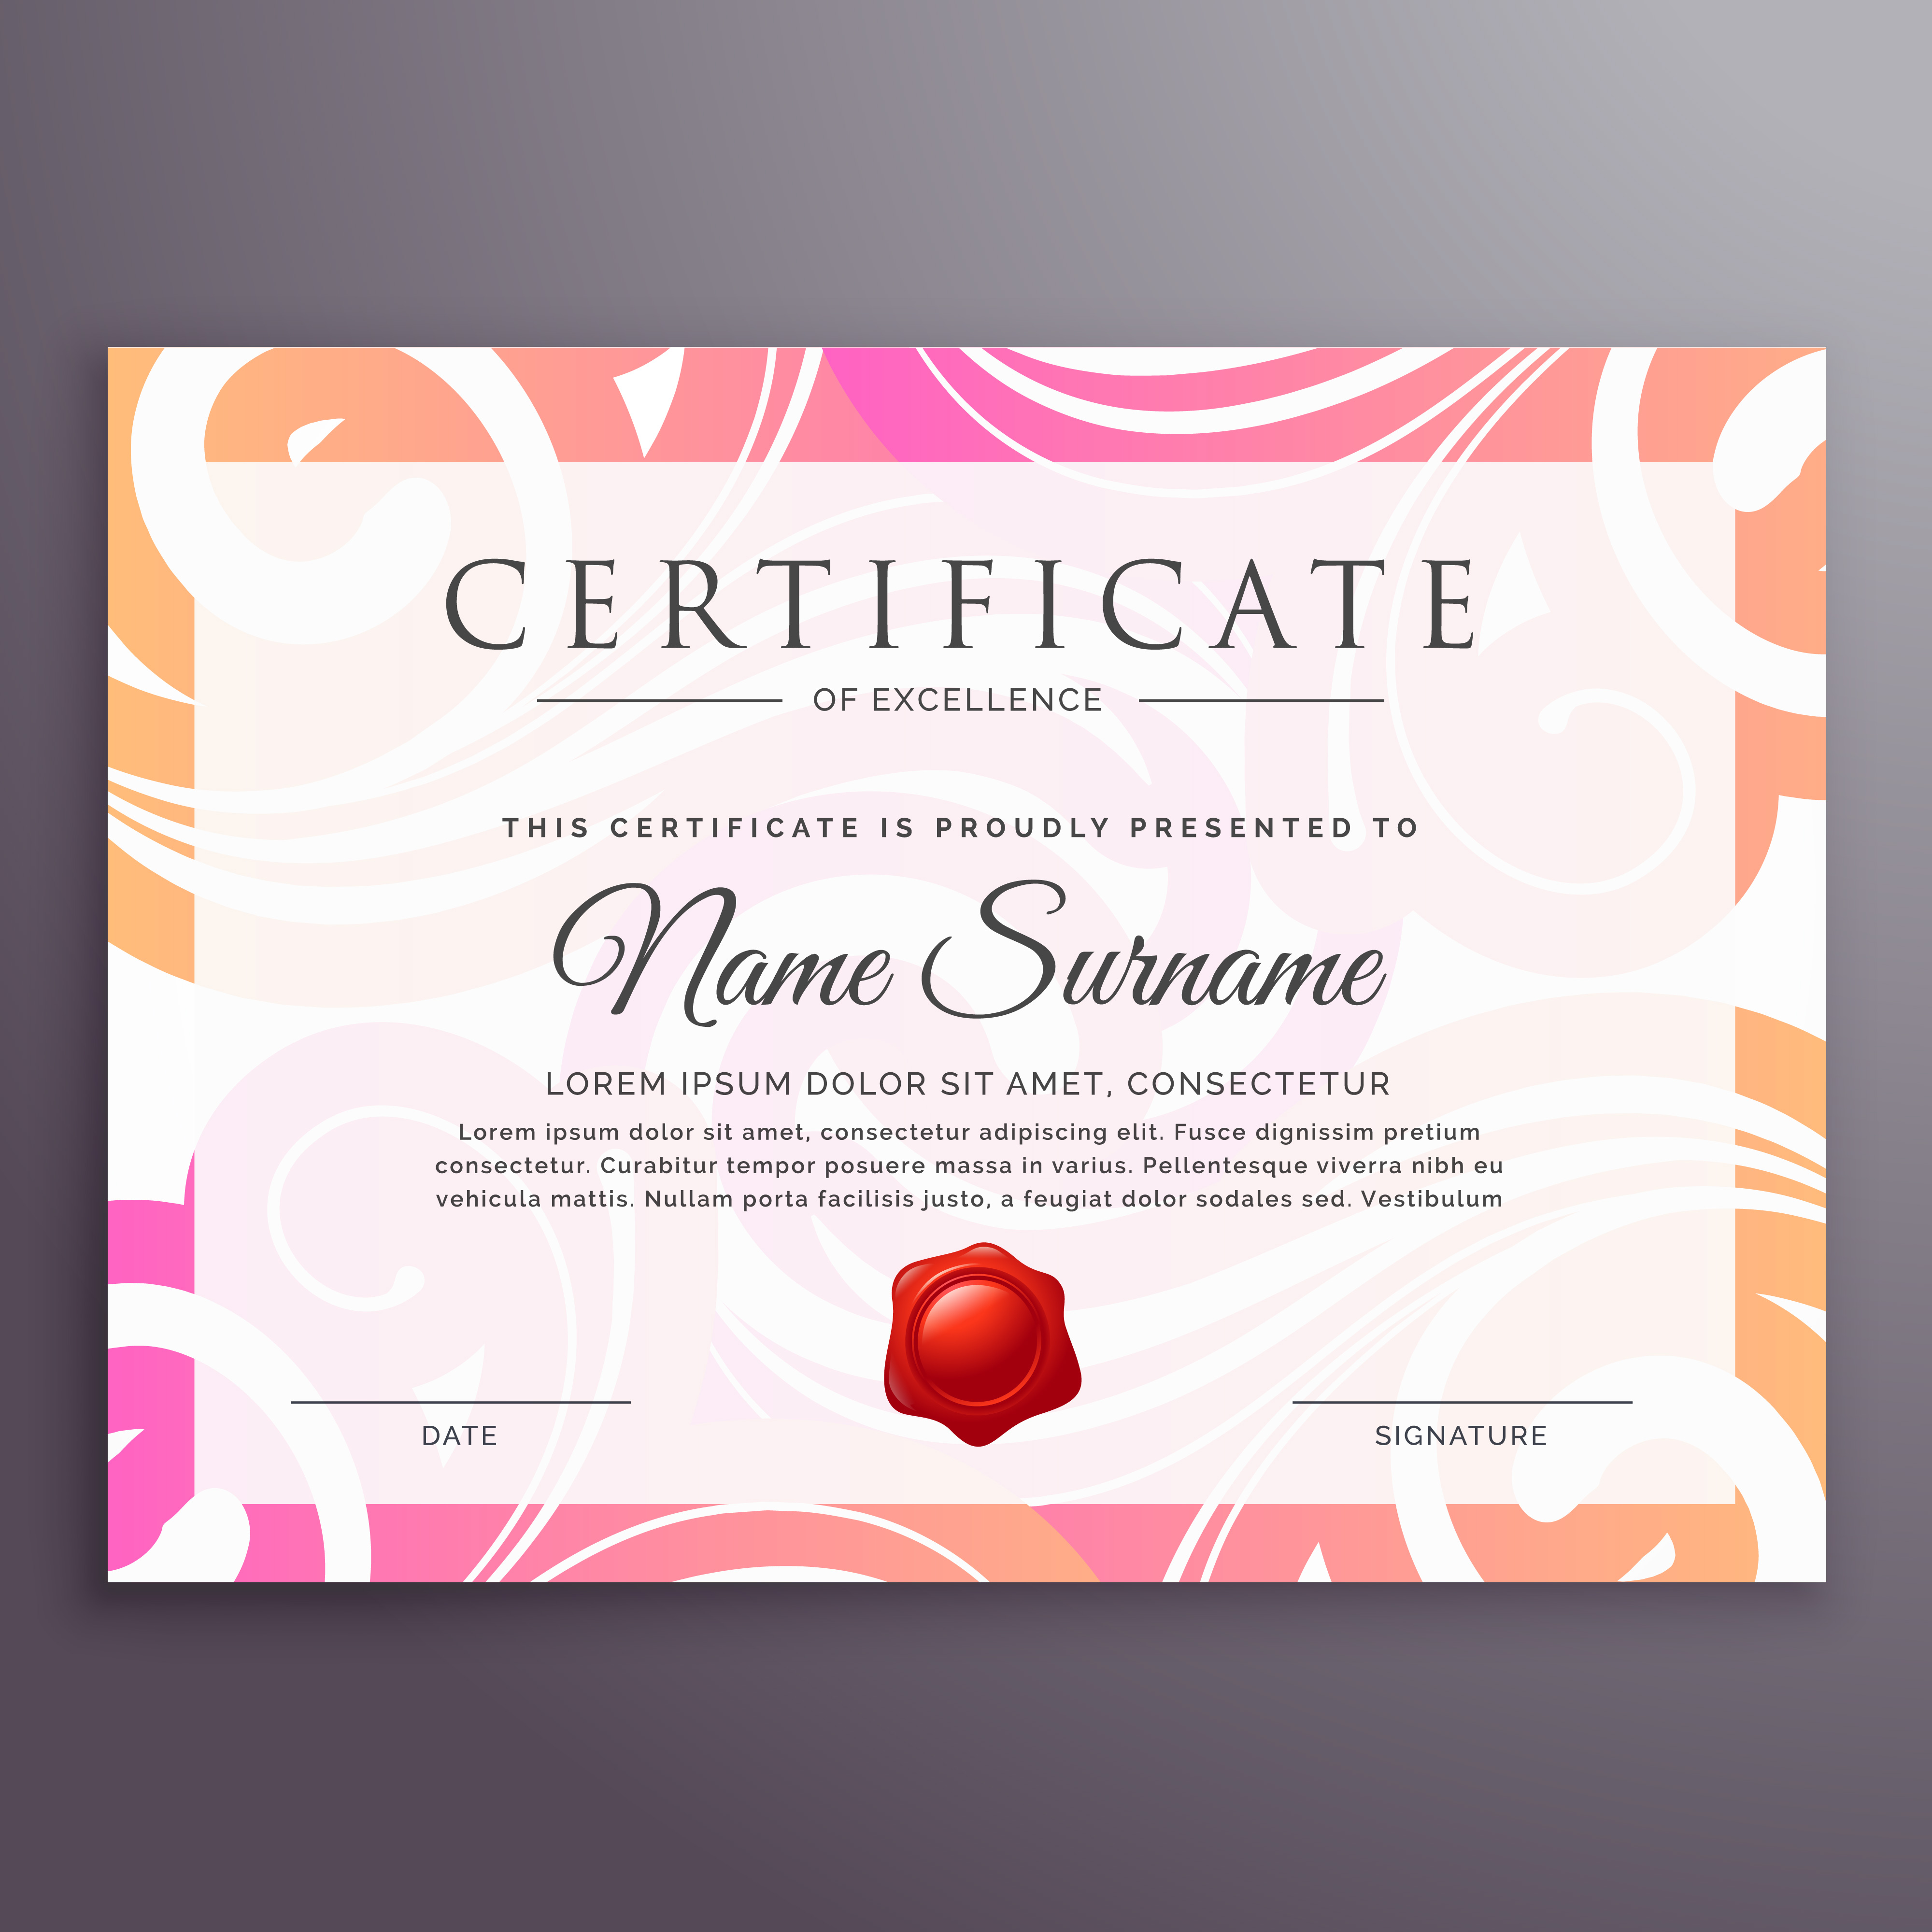 Stylish Floral Background Certificate Design Template